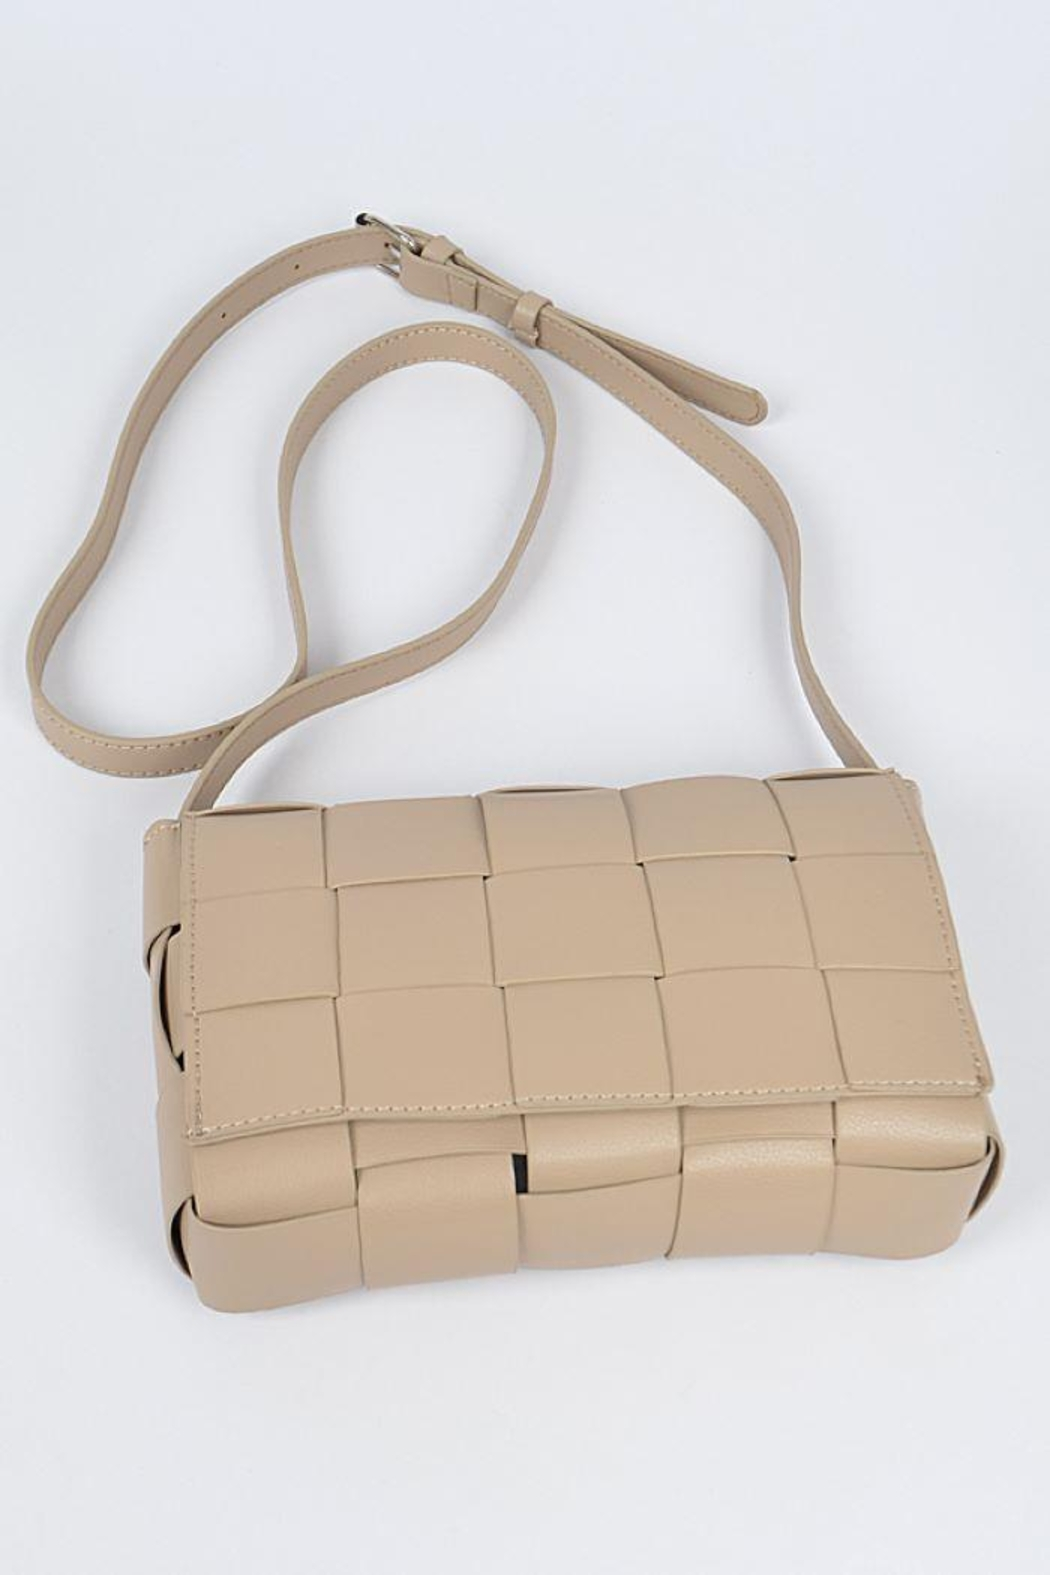 H&D Accessories Monotone Weaving Leather Clutch - Front Full Image